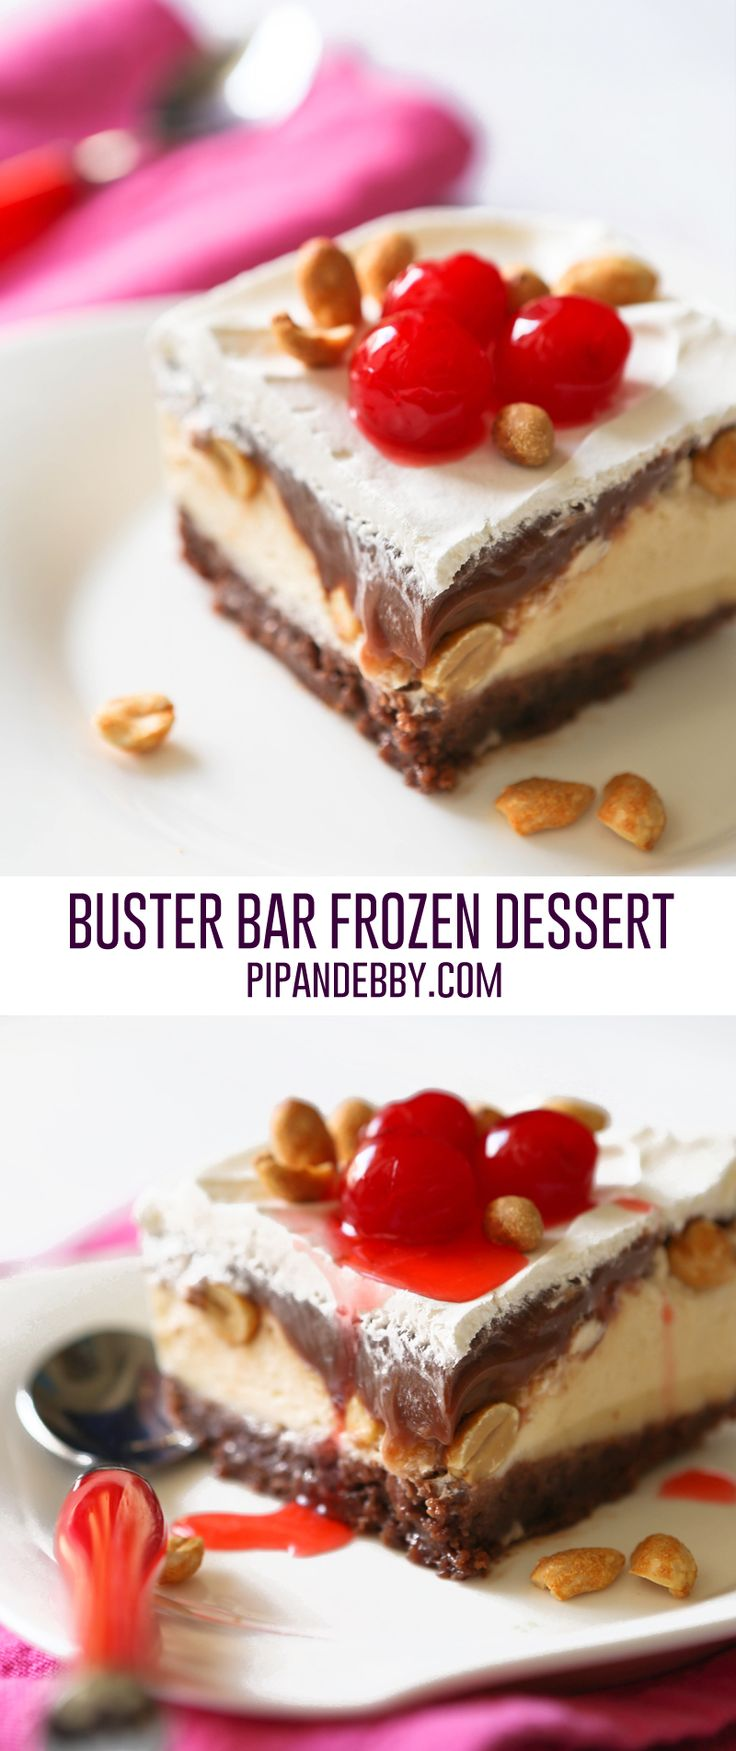 It's a dream come true! An entire pan of Buster Bars at your fingertips. Best frozen dessert ever.